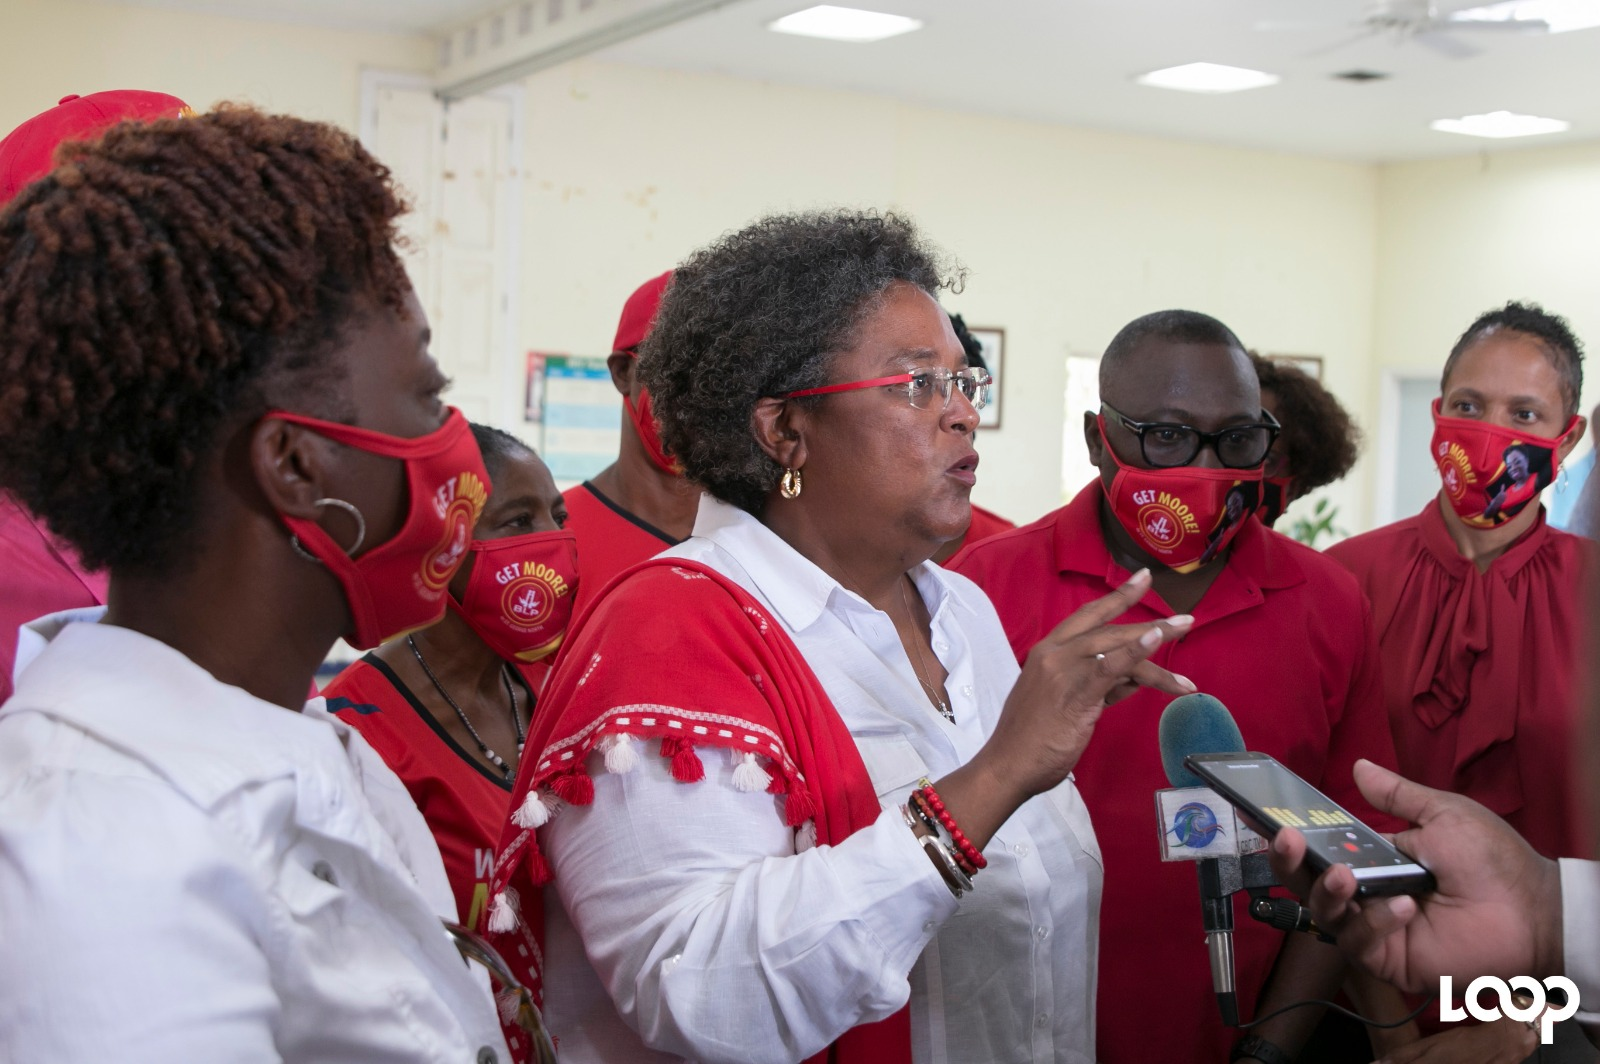 Prime Minister Mia Mottley was at the Valley Resource Centre showing her support for BLP candidate Toni Moore.